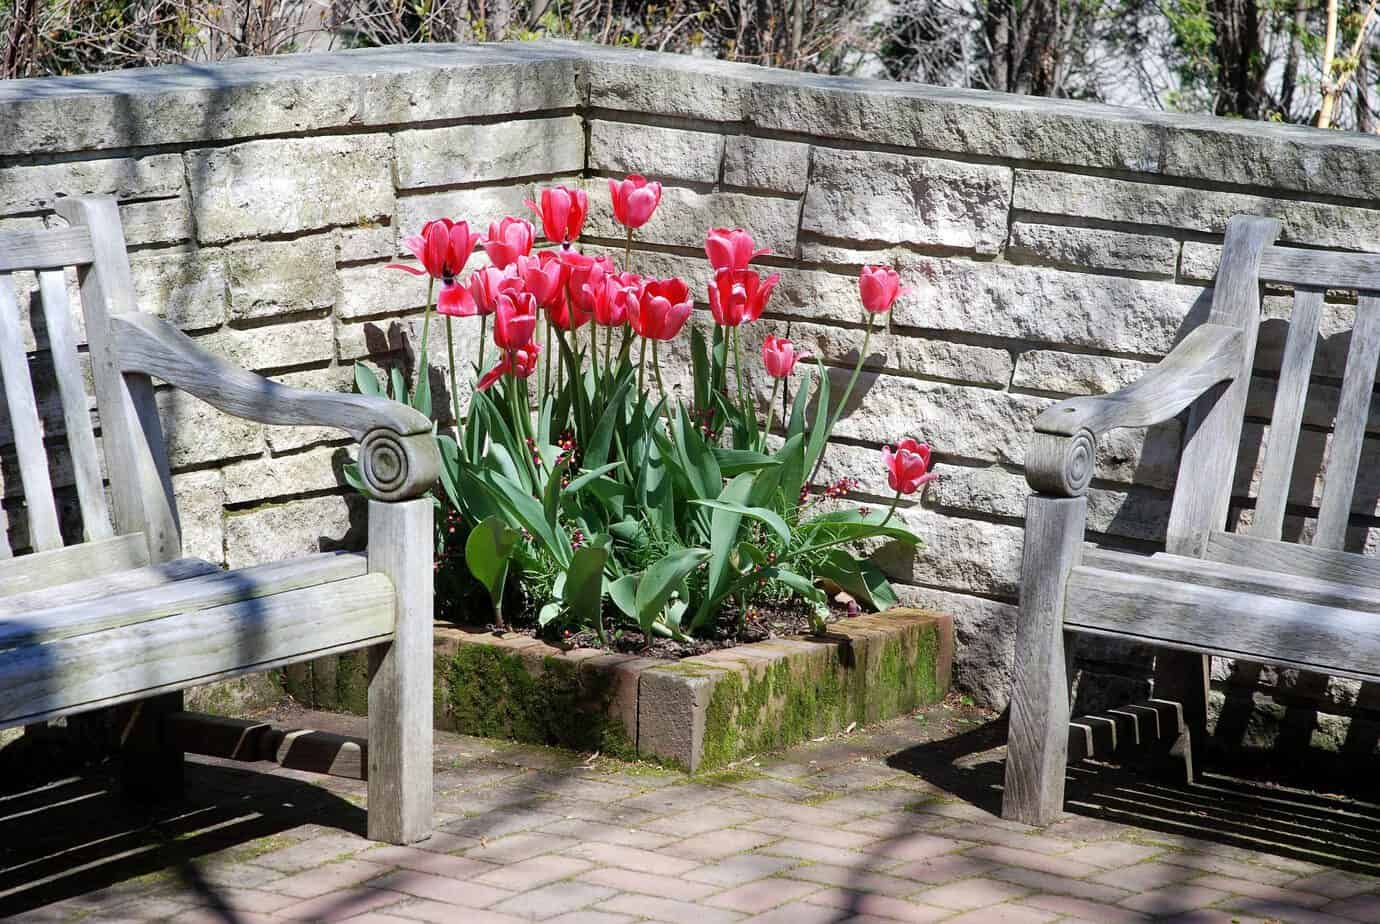 How To Get Your Tulips to Come Back Each Year